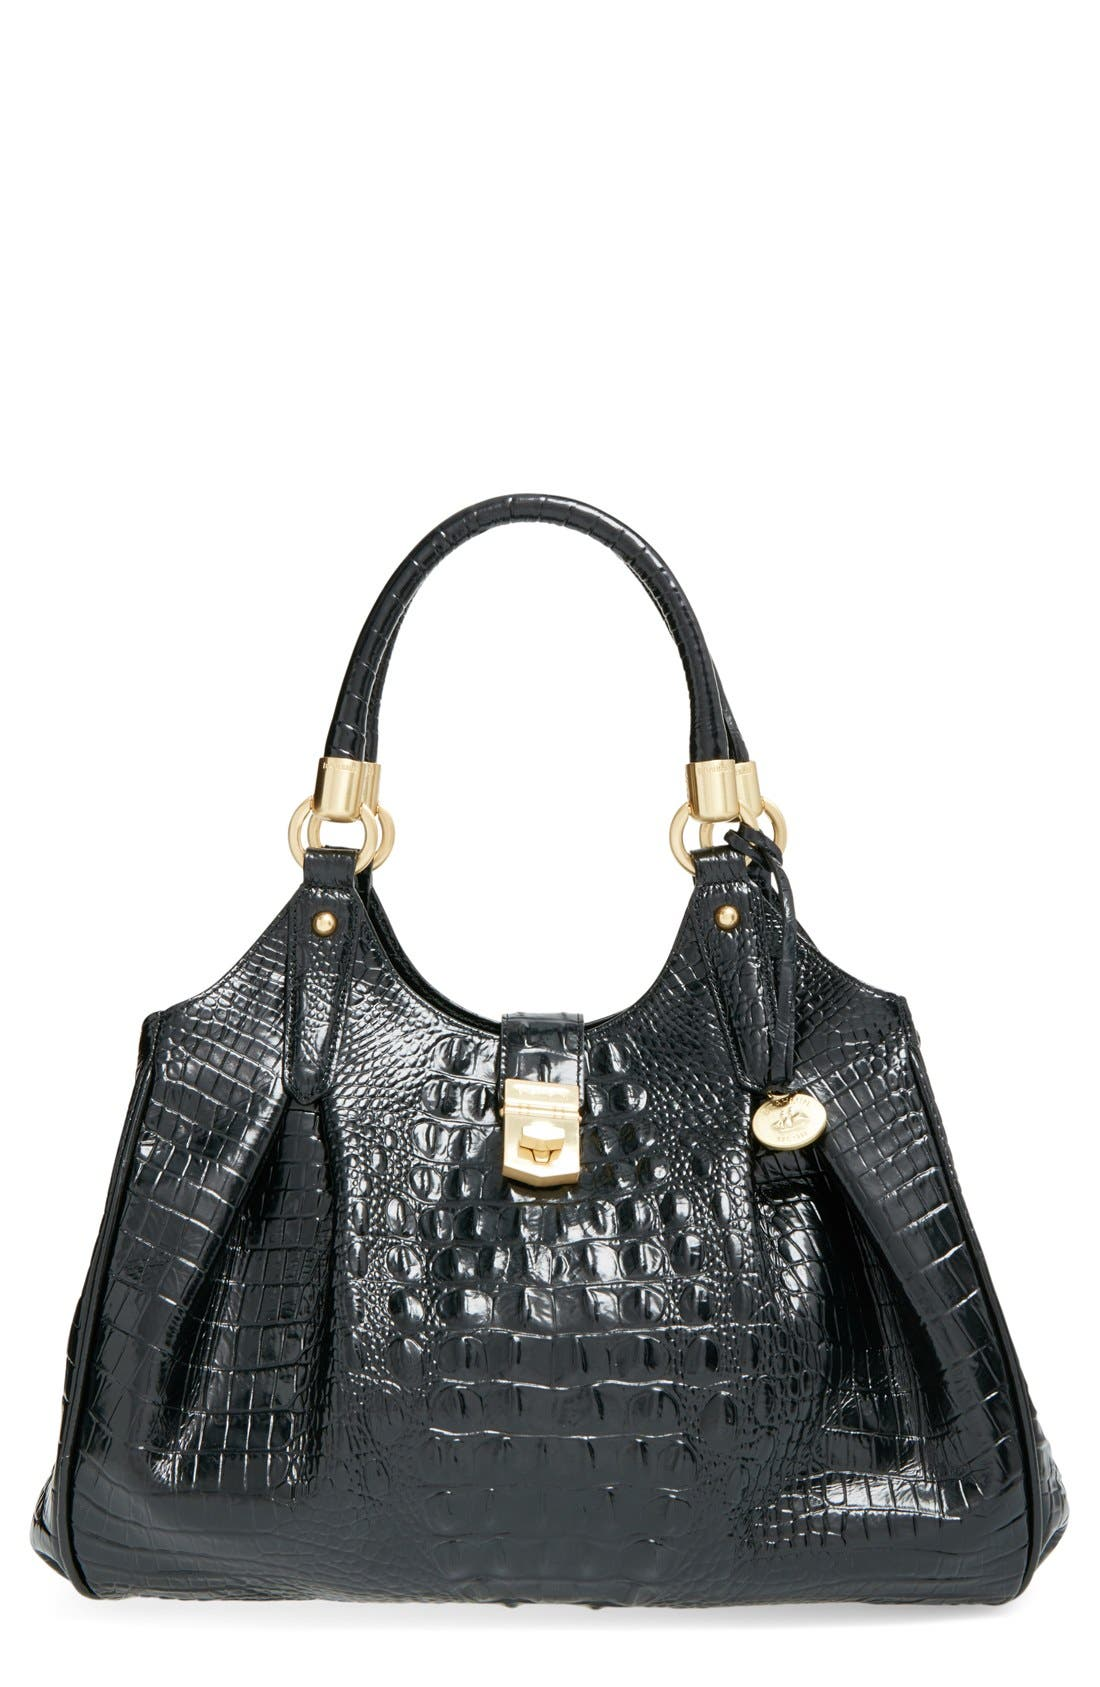 Main Image - Brahmin Elisa Croc Embossed Leather Shoulder Bag